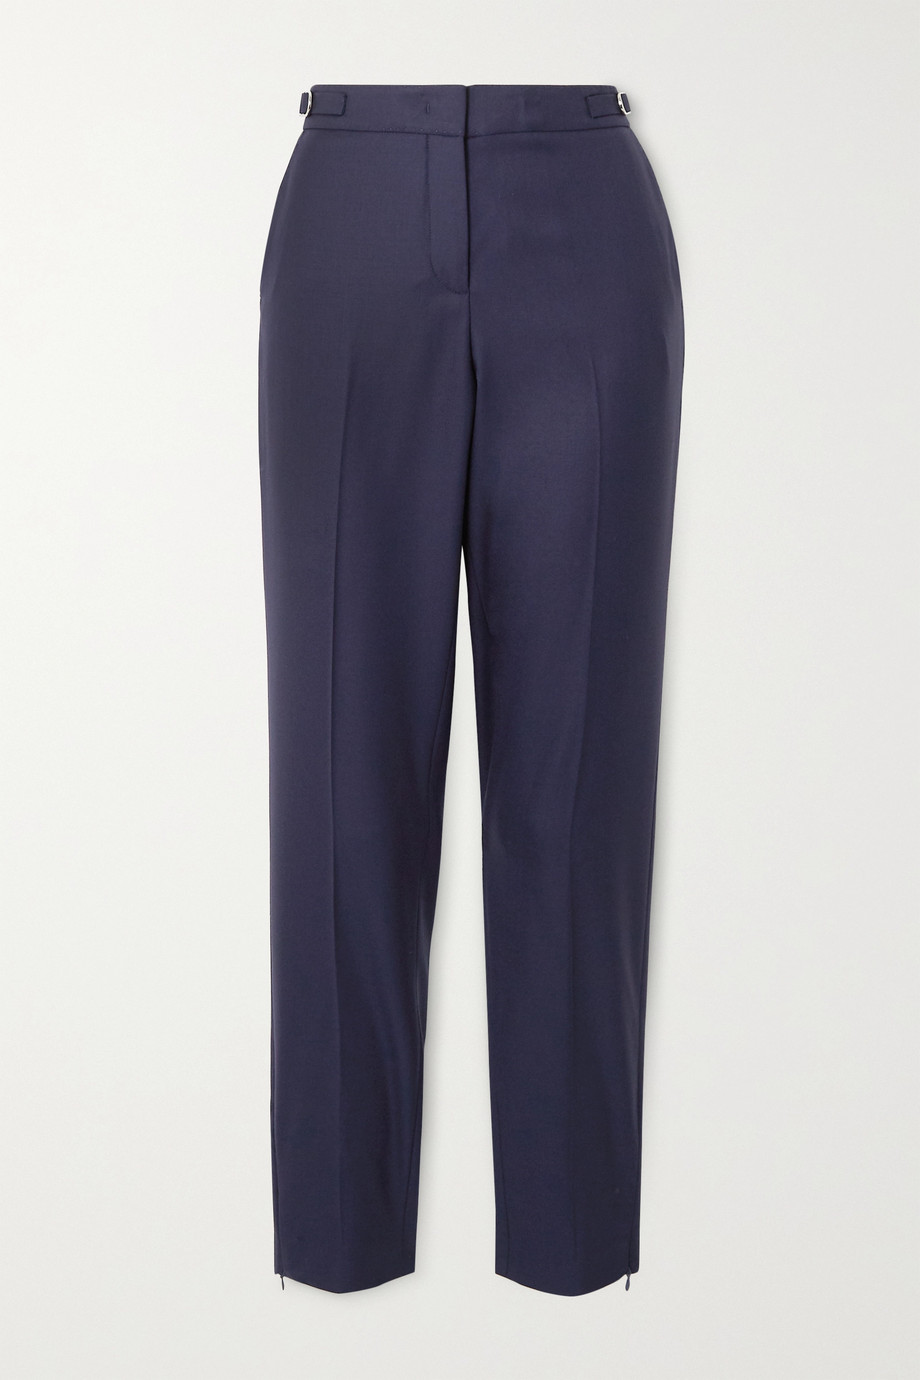 Gabriela Hearst + NET SUSTAIN Lisa wool tapered pants